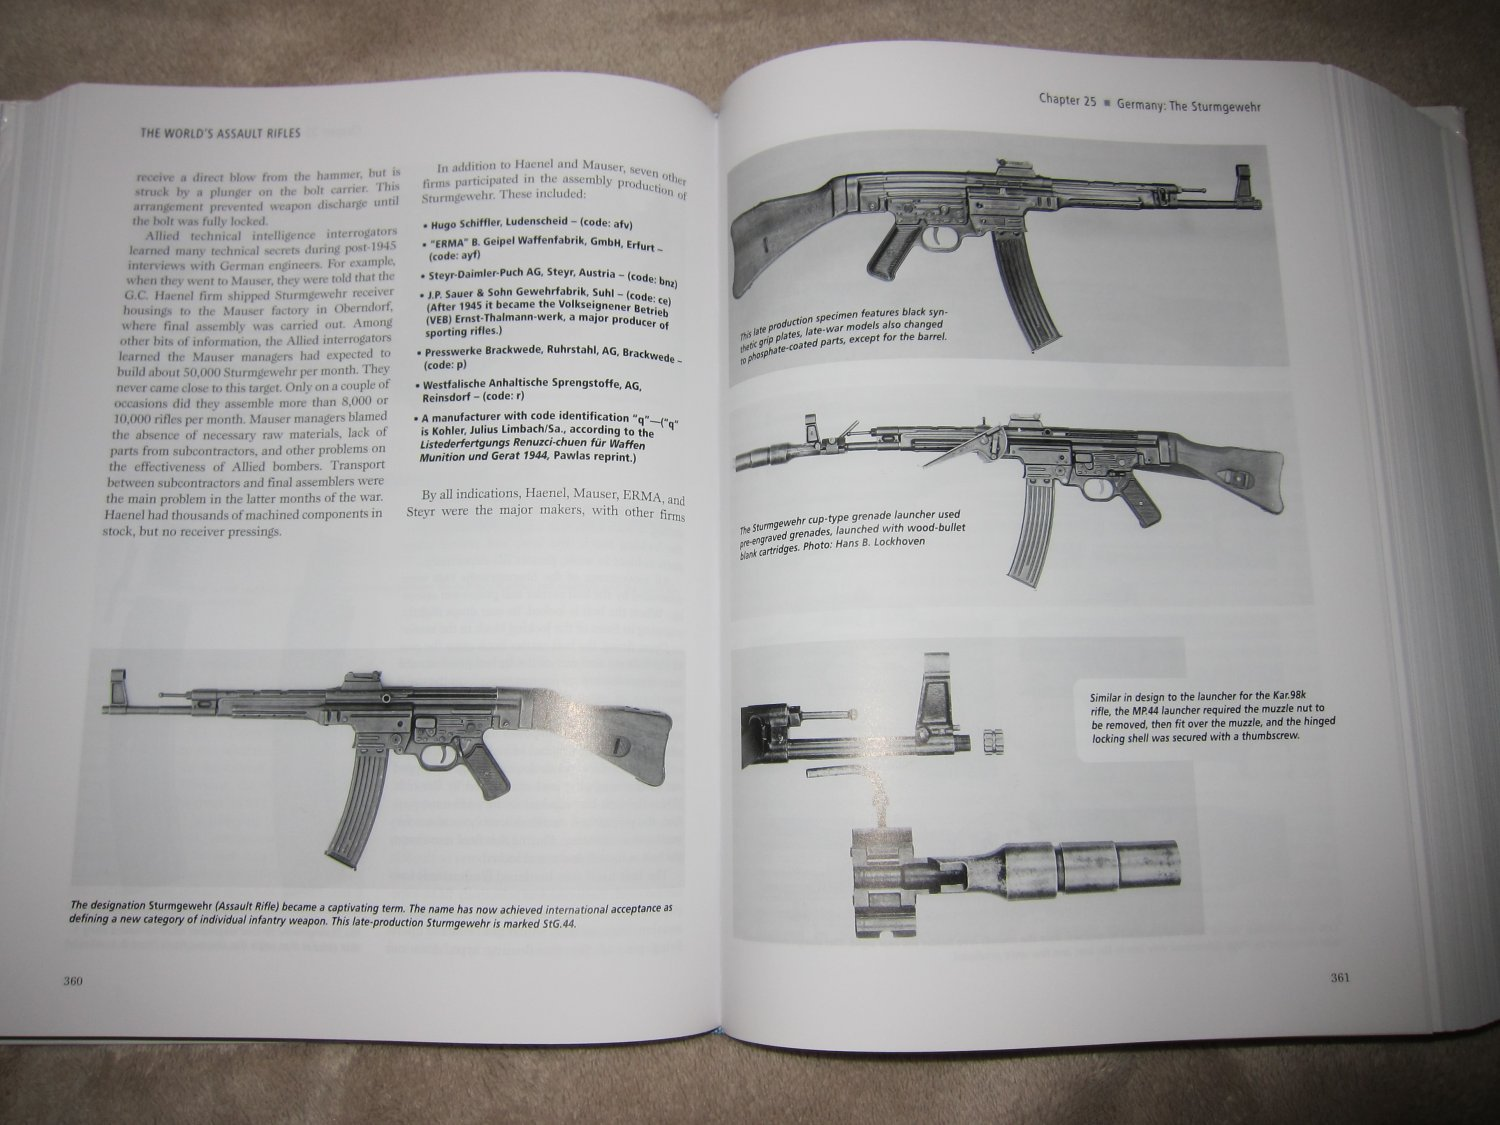 Assault Rifles of the World Book Gary Paul Johnston 3 <!  :en  >The Worlds Assault Rifles: Best and Most Complete Book on Military Infantry Assault Rifles (and Battle Rifles) Ever Written?  DefenseReview (DR) Highly Recommends It!<!  :  >